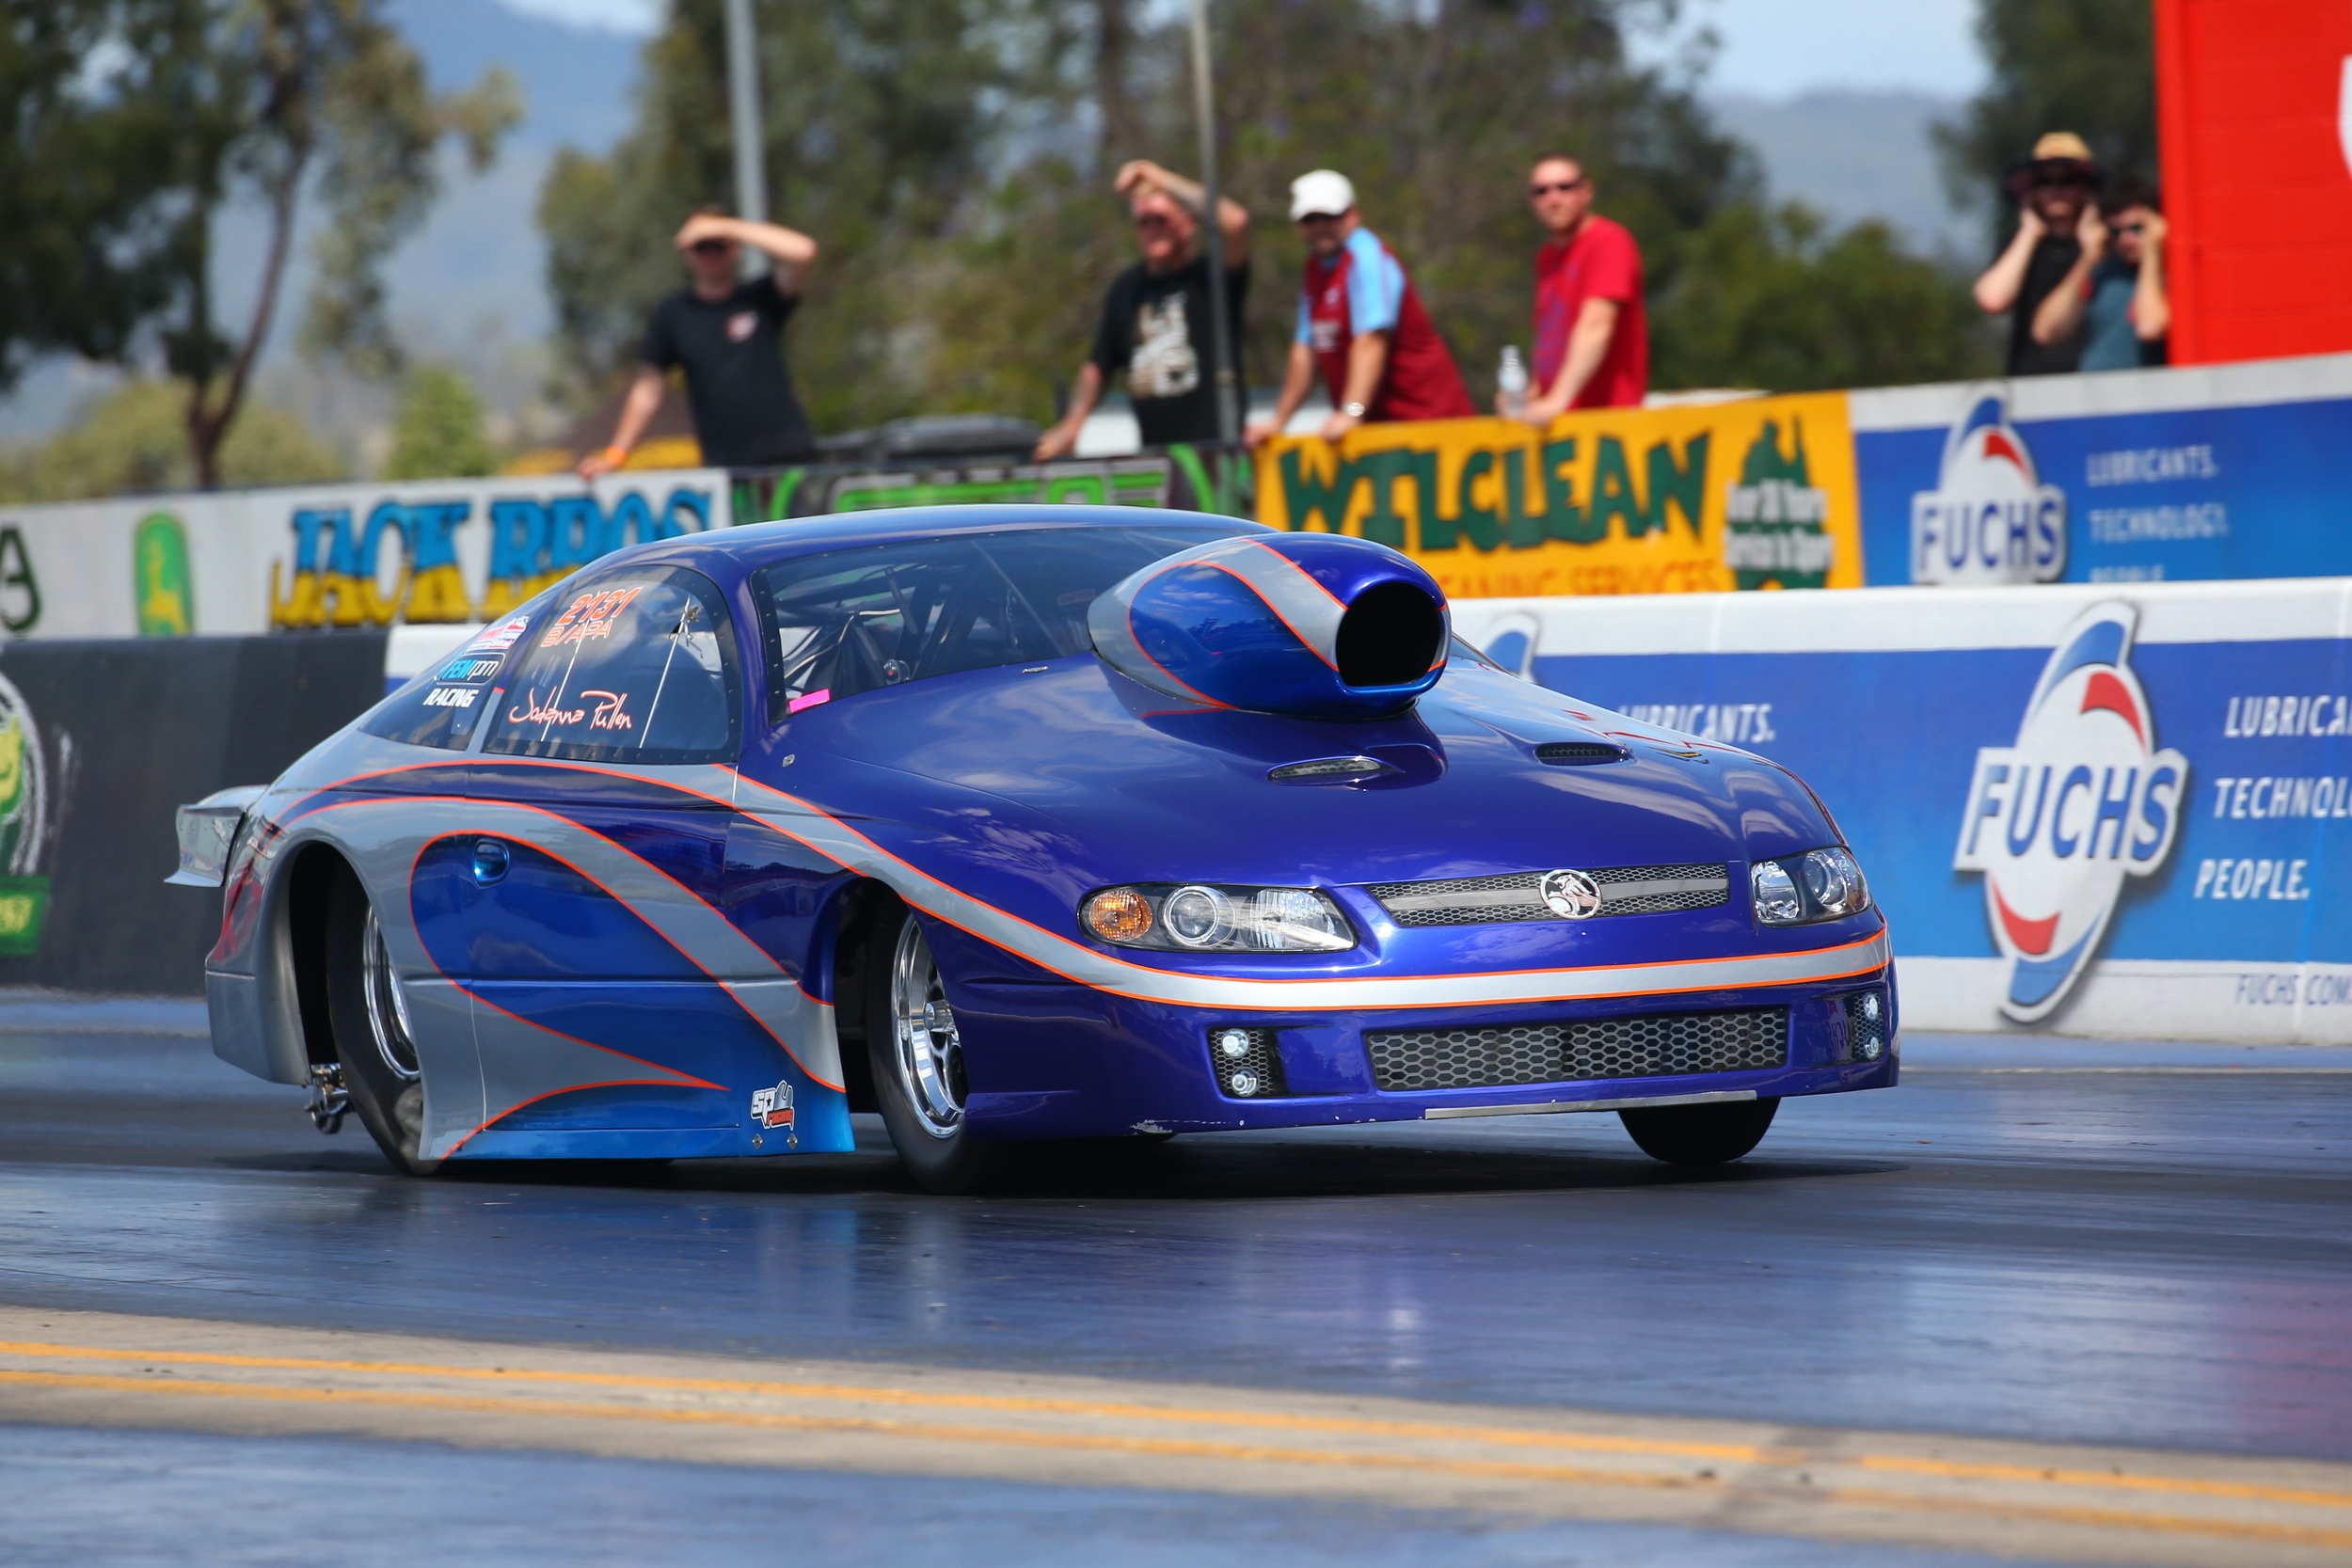 Jodanna Pullen is ready for the East Coast Nationals after a successful testing program (credit-dragphotos.com.au)